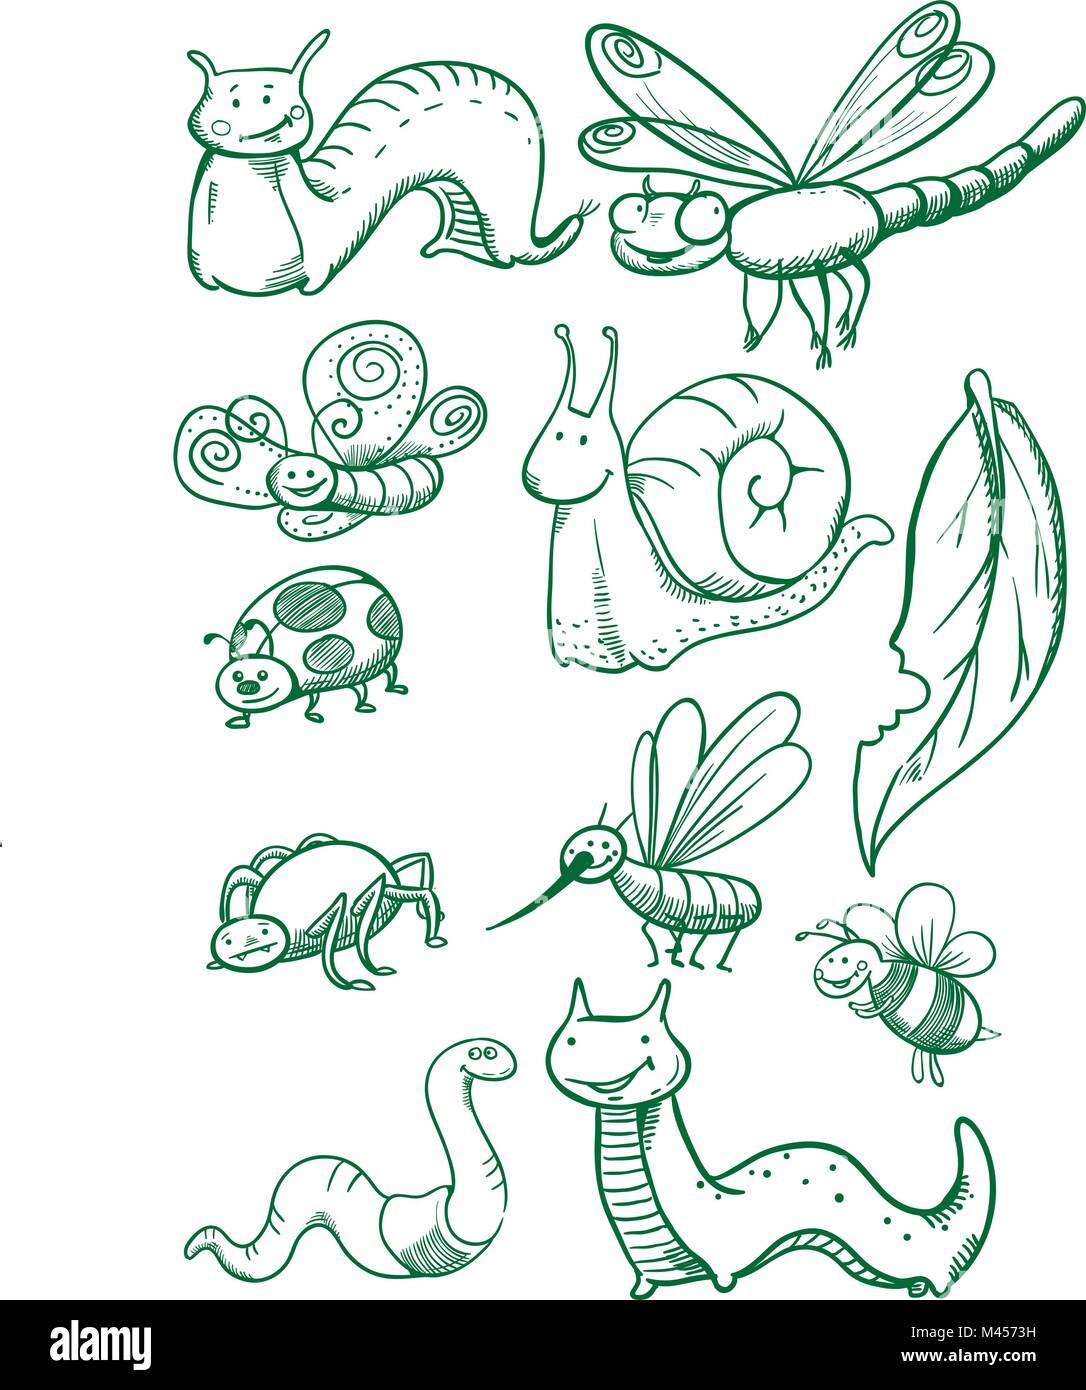 Creative conceptual vector. Drawn insects set. - Stock Vector